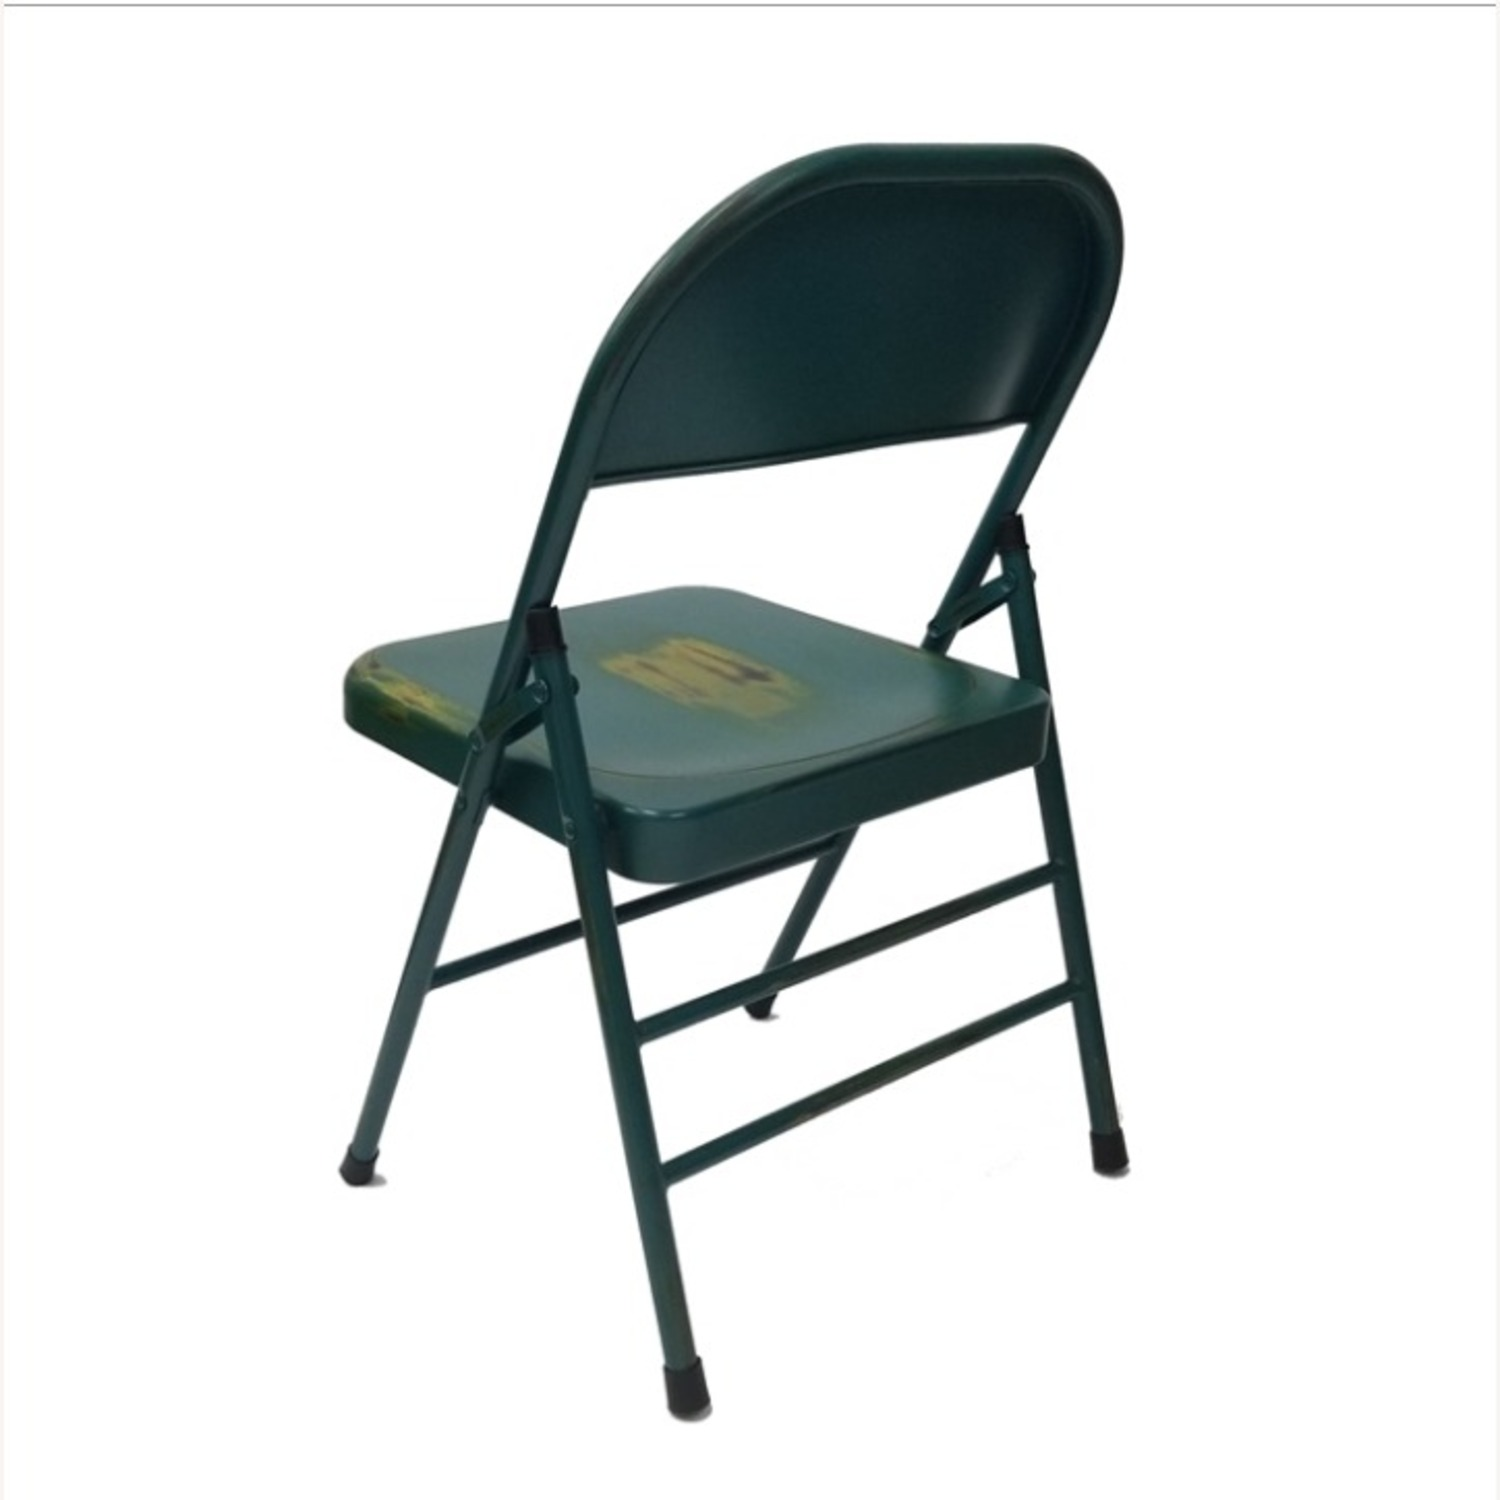 Folding Chair In Turquoise Powder Coated Finish - image-3